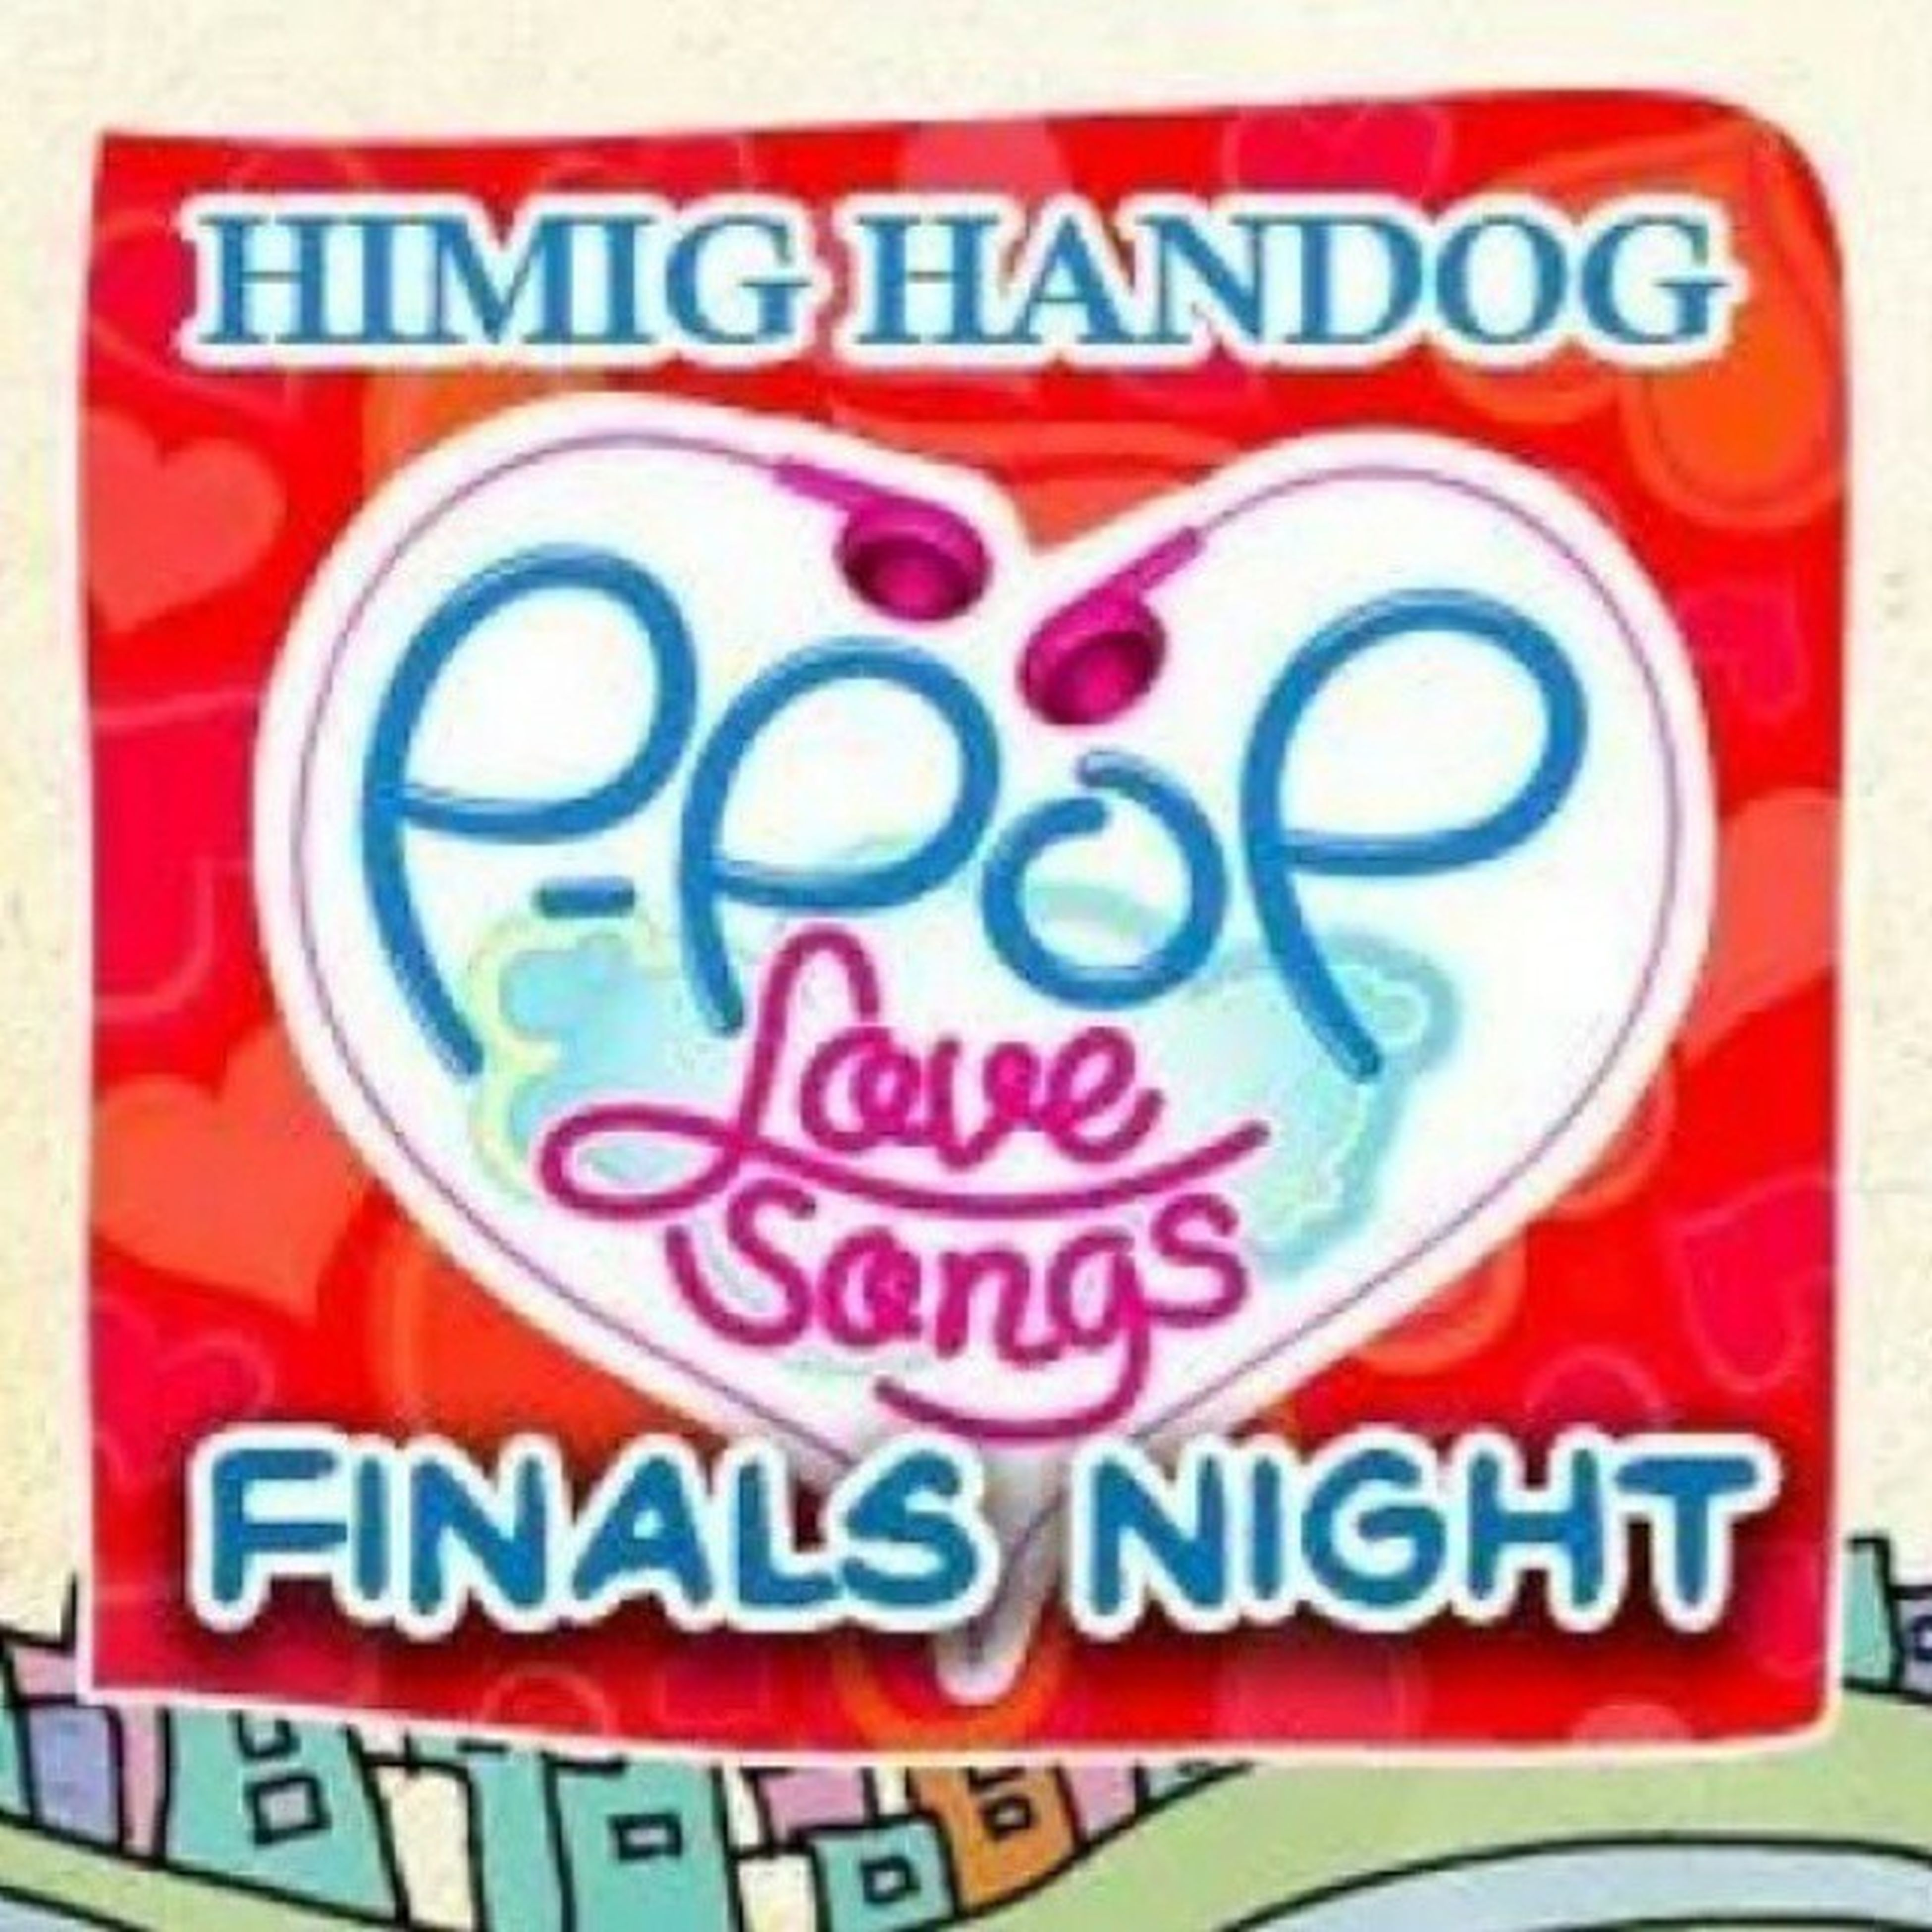 Watching Himighandog Ppoplovesonga Finalnight Happykid SupportPPOP